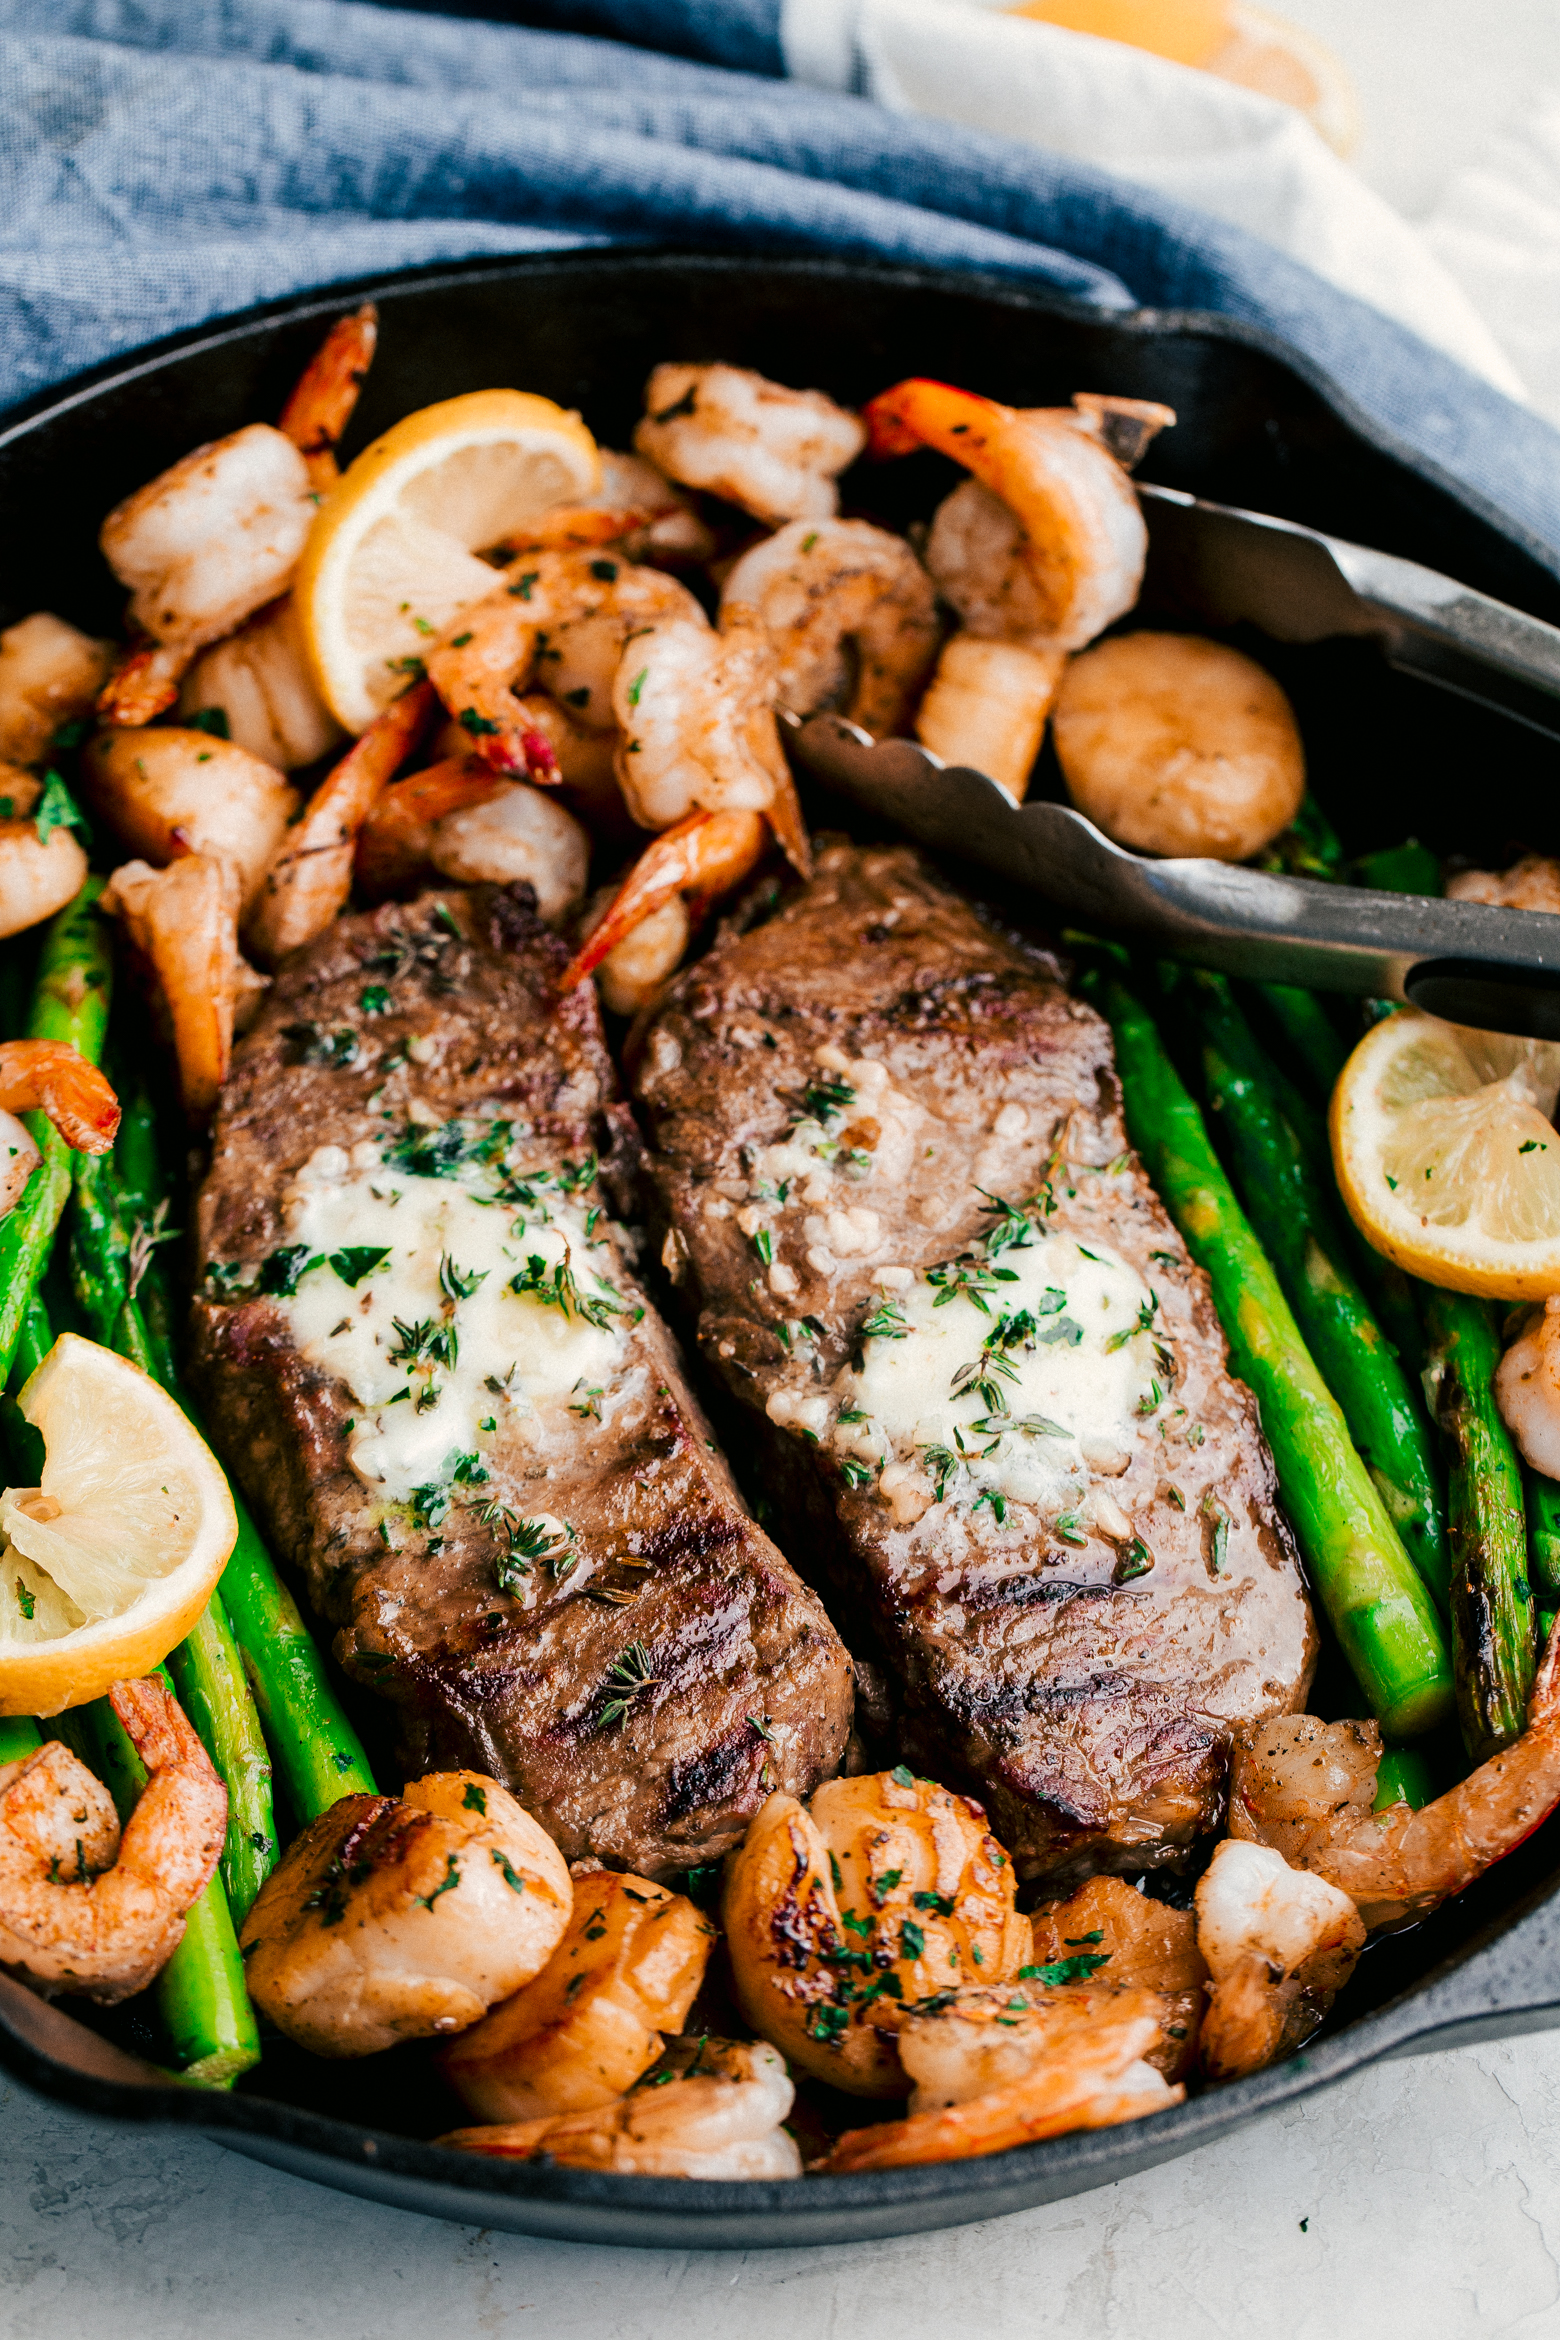 Garlic butter surf and turf made with roasted asparagus in a skillet topped with garlic butter and fresh herbs, by The Food Cafe.